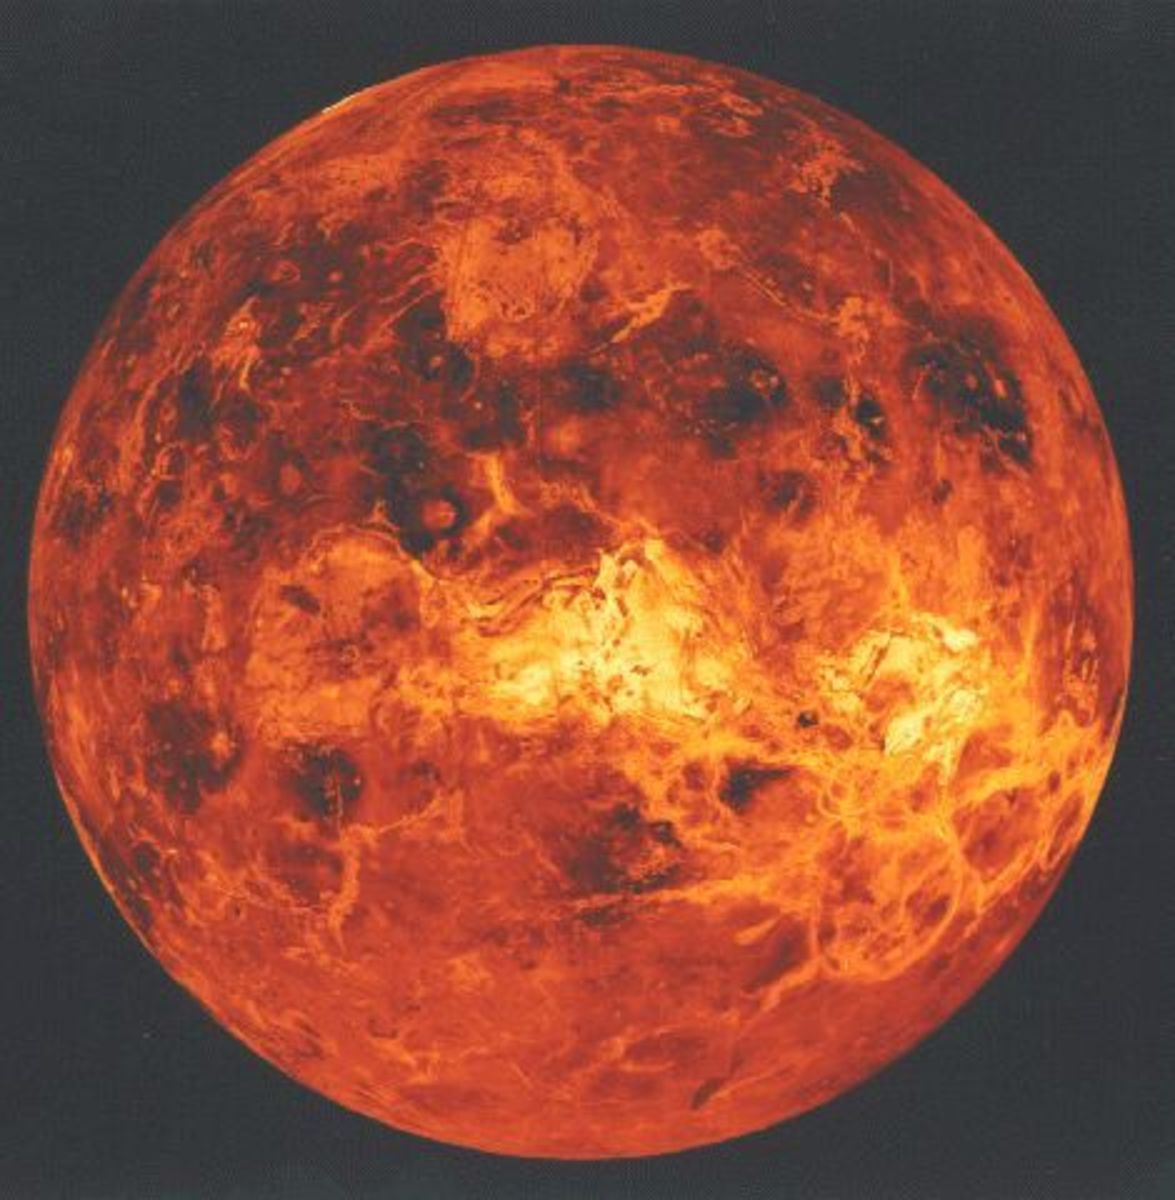 The planet Venus is too hot, with too acidic an atmospheric to support carbon-based life, as far as we know. We may discover differently.